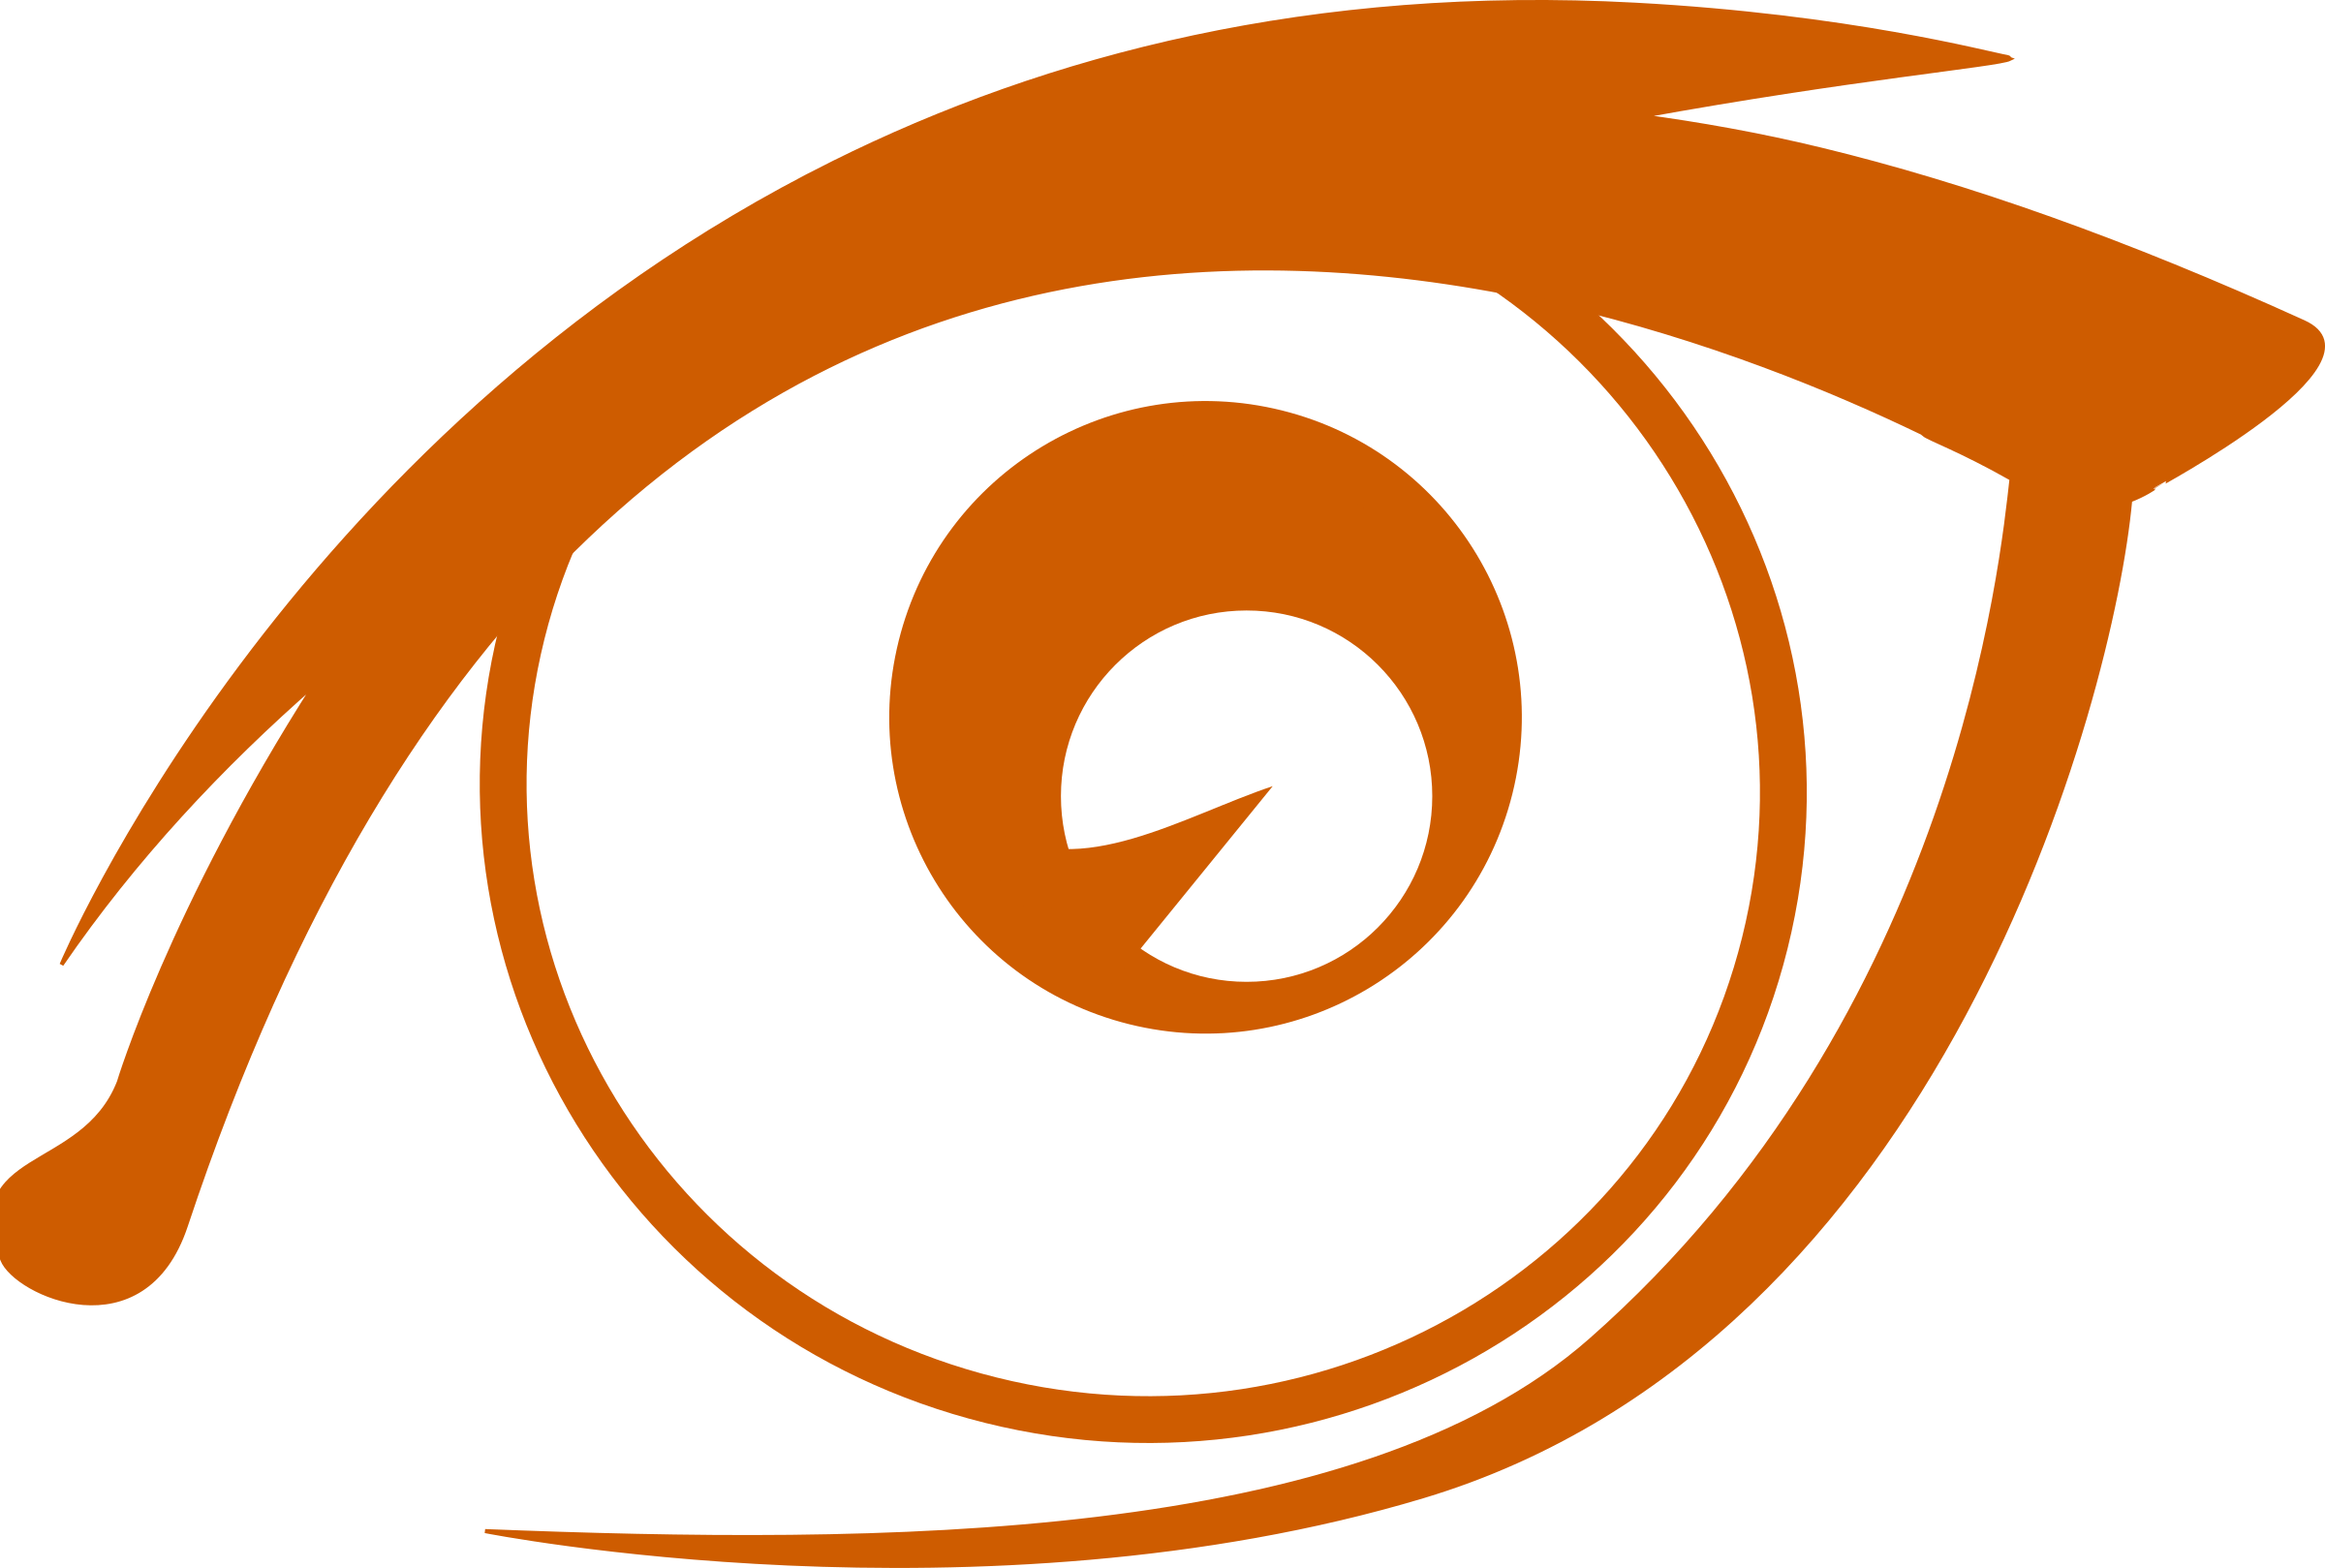 Vector eyeball simple. Graphic library brown